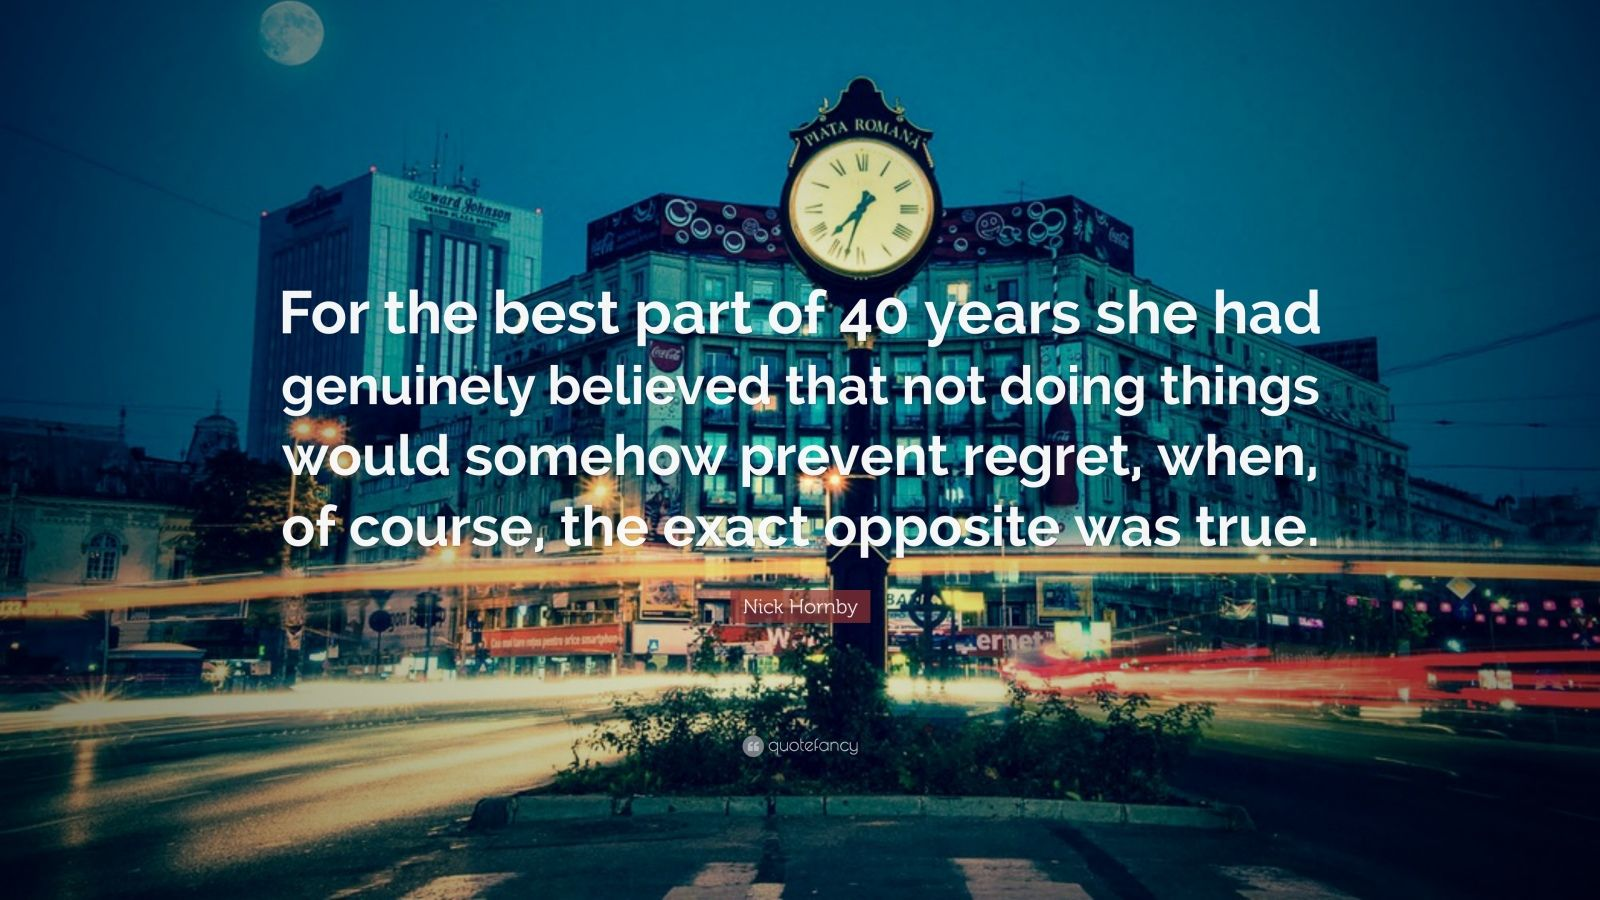 """Nick Hornby Quote: """"For the best part of 40 years she had genuinely believed that not doing things would somehow prevent regret, when, of course, the exact opposite was true."""""""